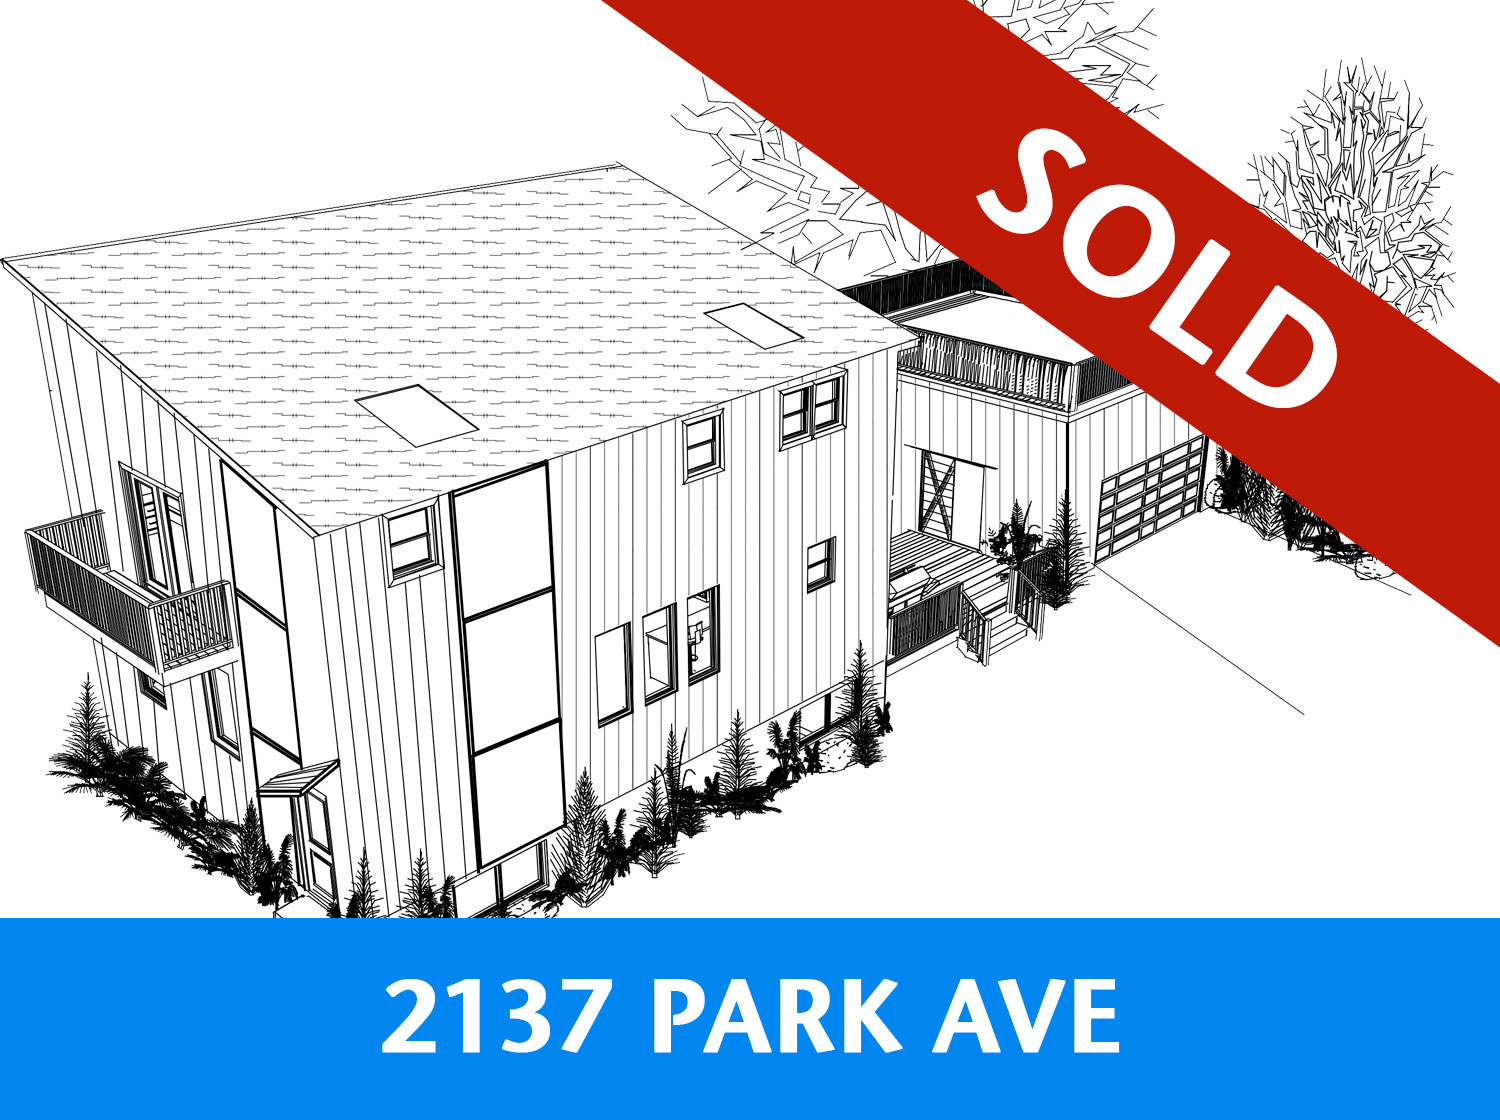 1964 Park Ave Property SOLD Graphic